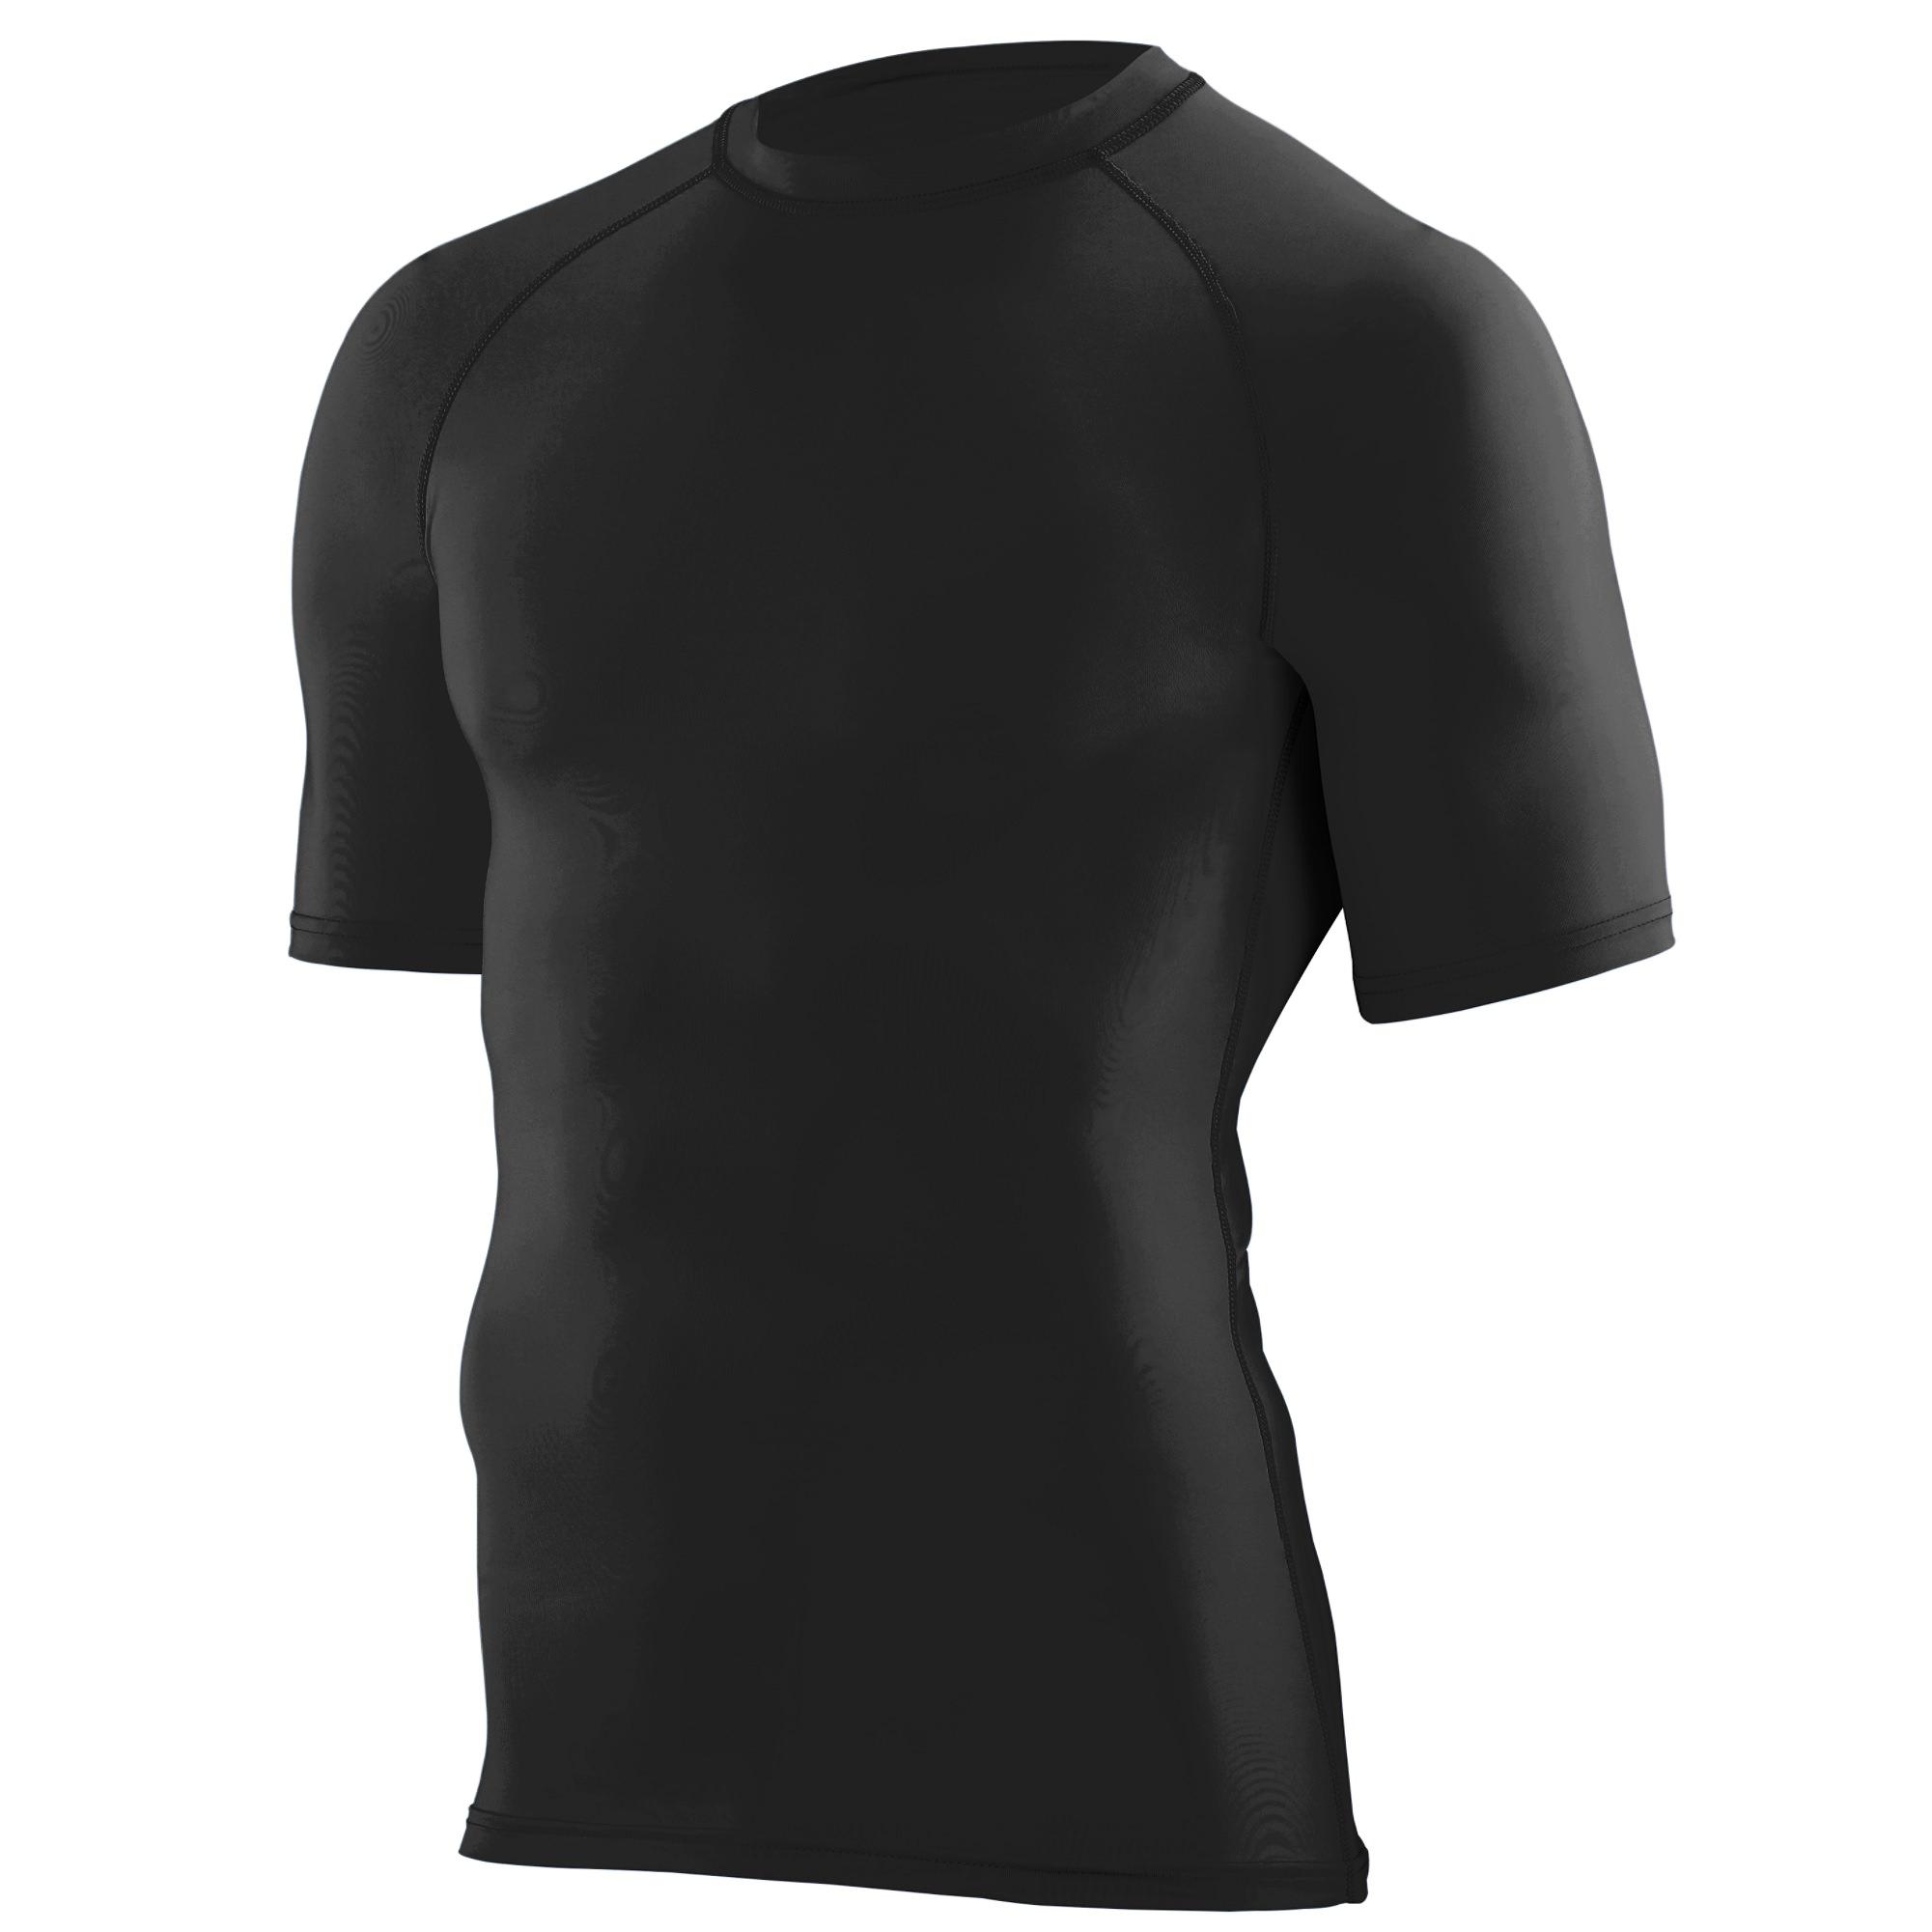 Sale Best Wholesale Active compression top - Black Track & Field Cheap From China fsw3Hz